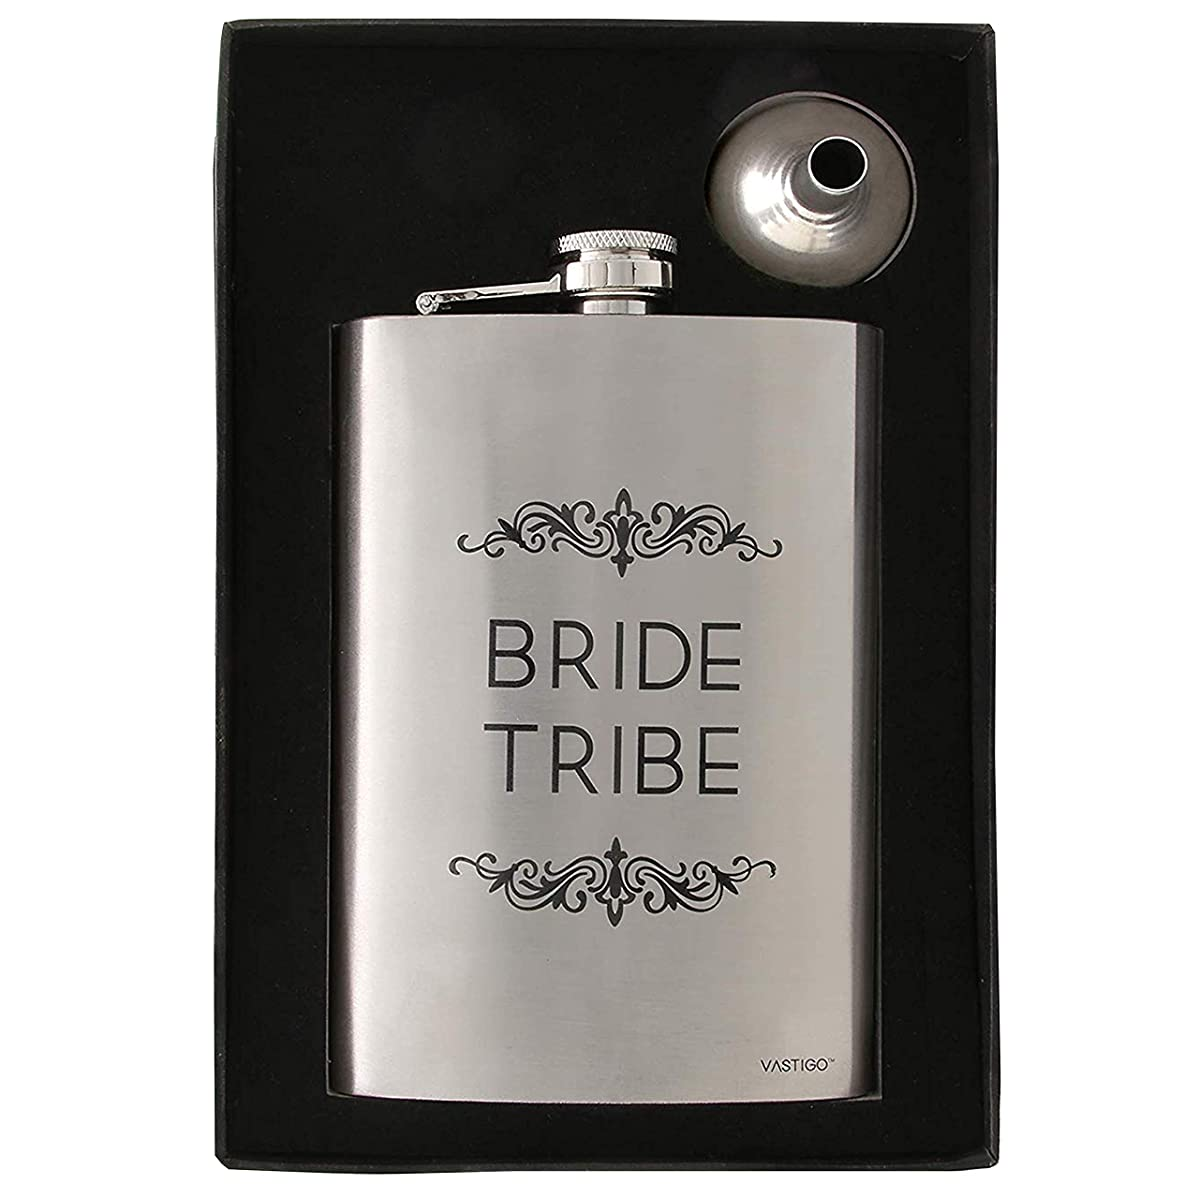 Vastigo Stainless Steel 8 oz Flask for Women w/Bride Tribe Slogan also included Free Funnel and Gift Box – Stainless